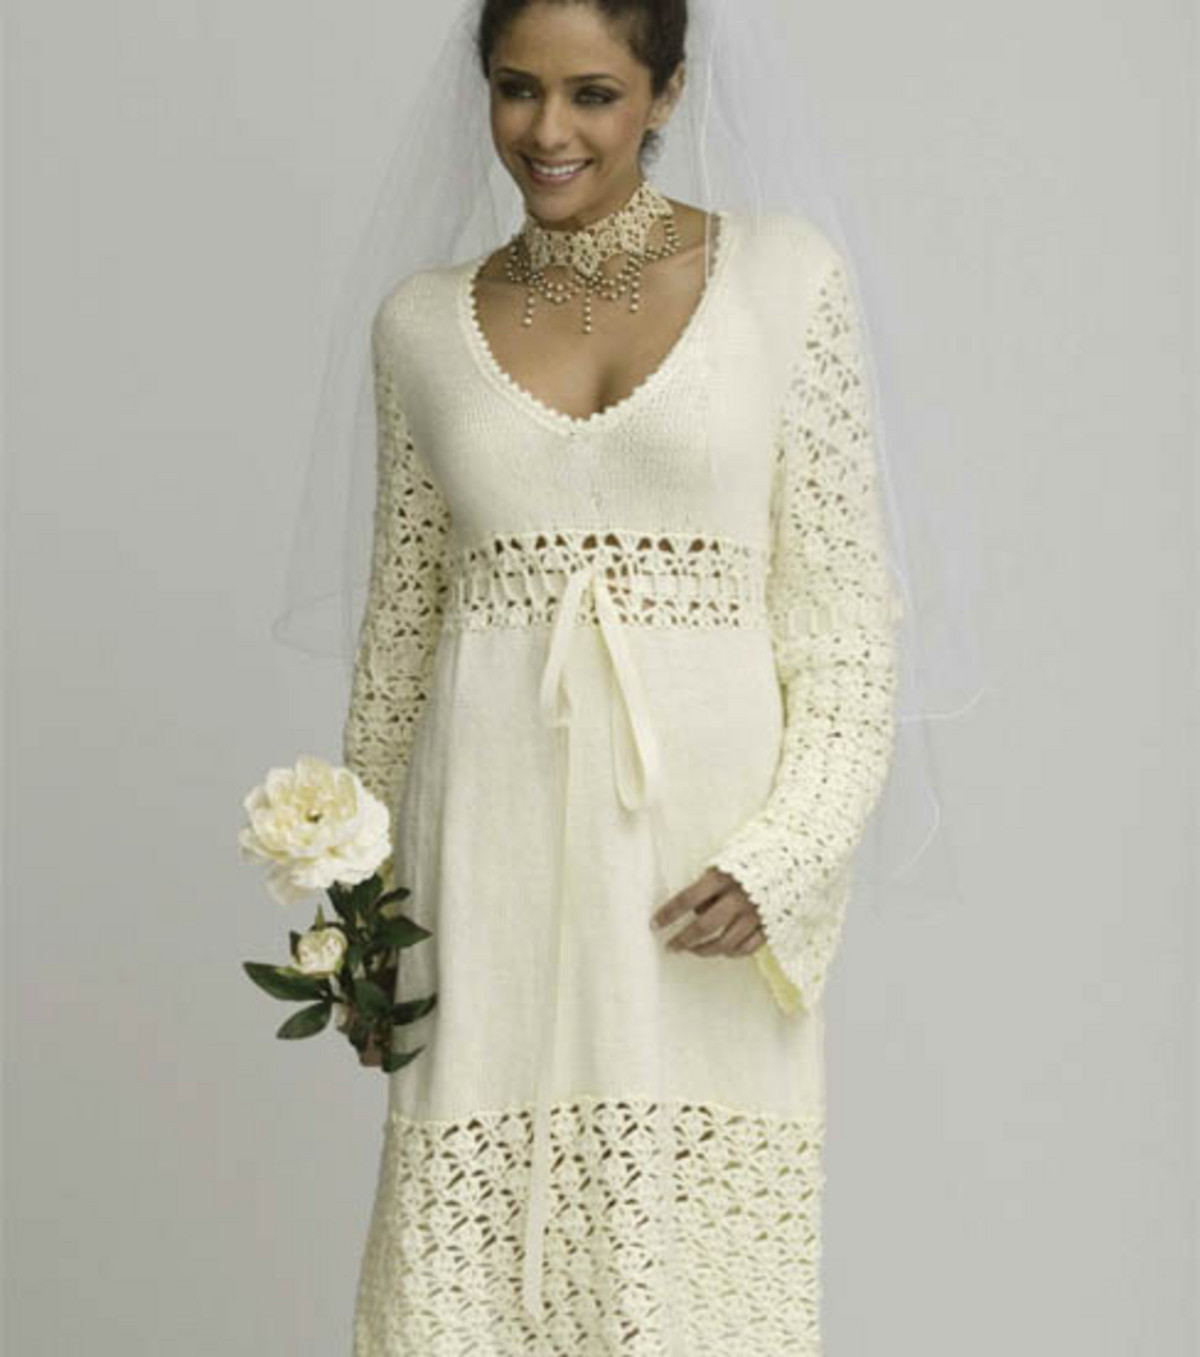 Crochet Dresses Best Of Crochet Wedding Dress Patterns and Wedding Accessories to Of Top 49 Pictures Crochet Dresses